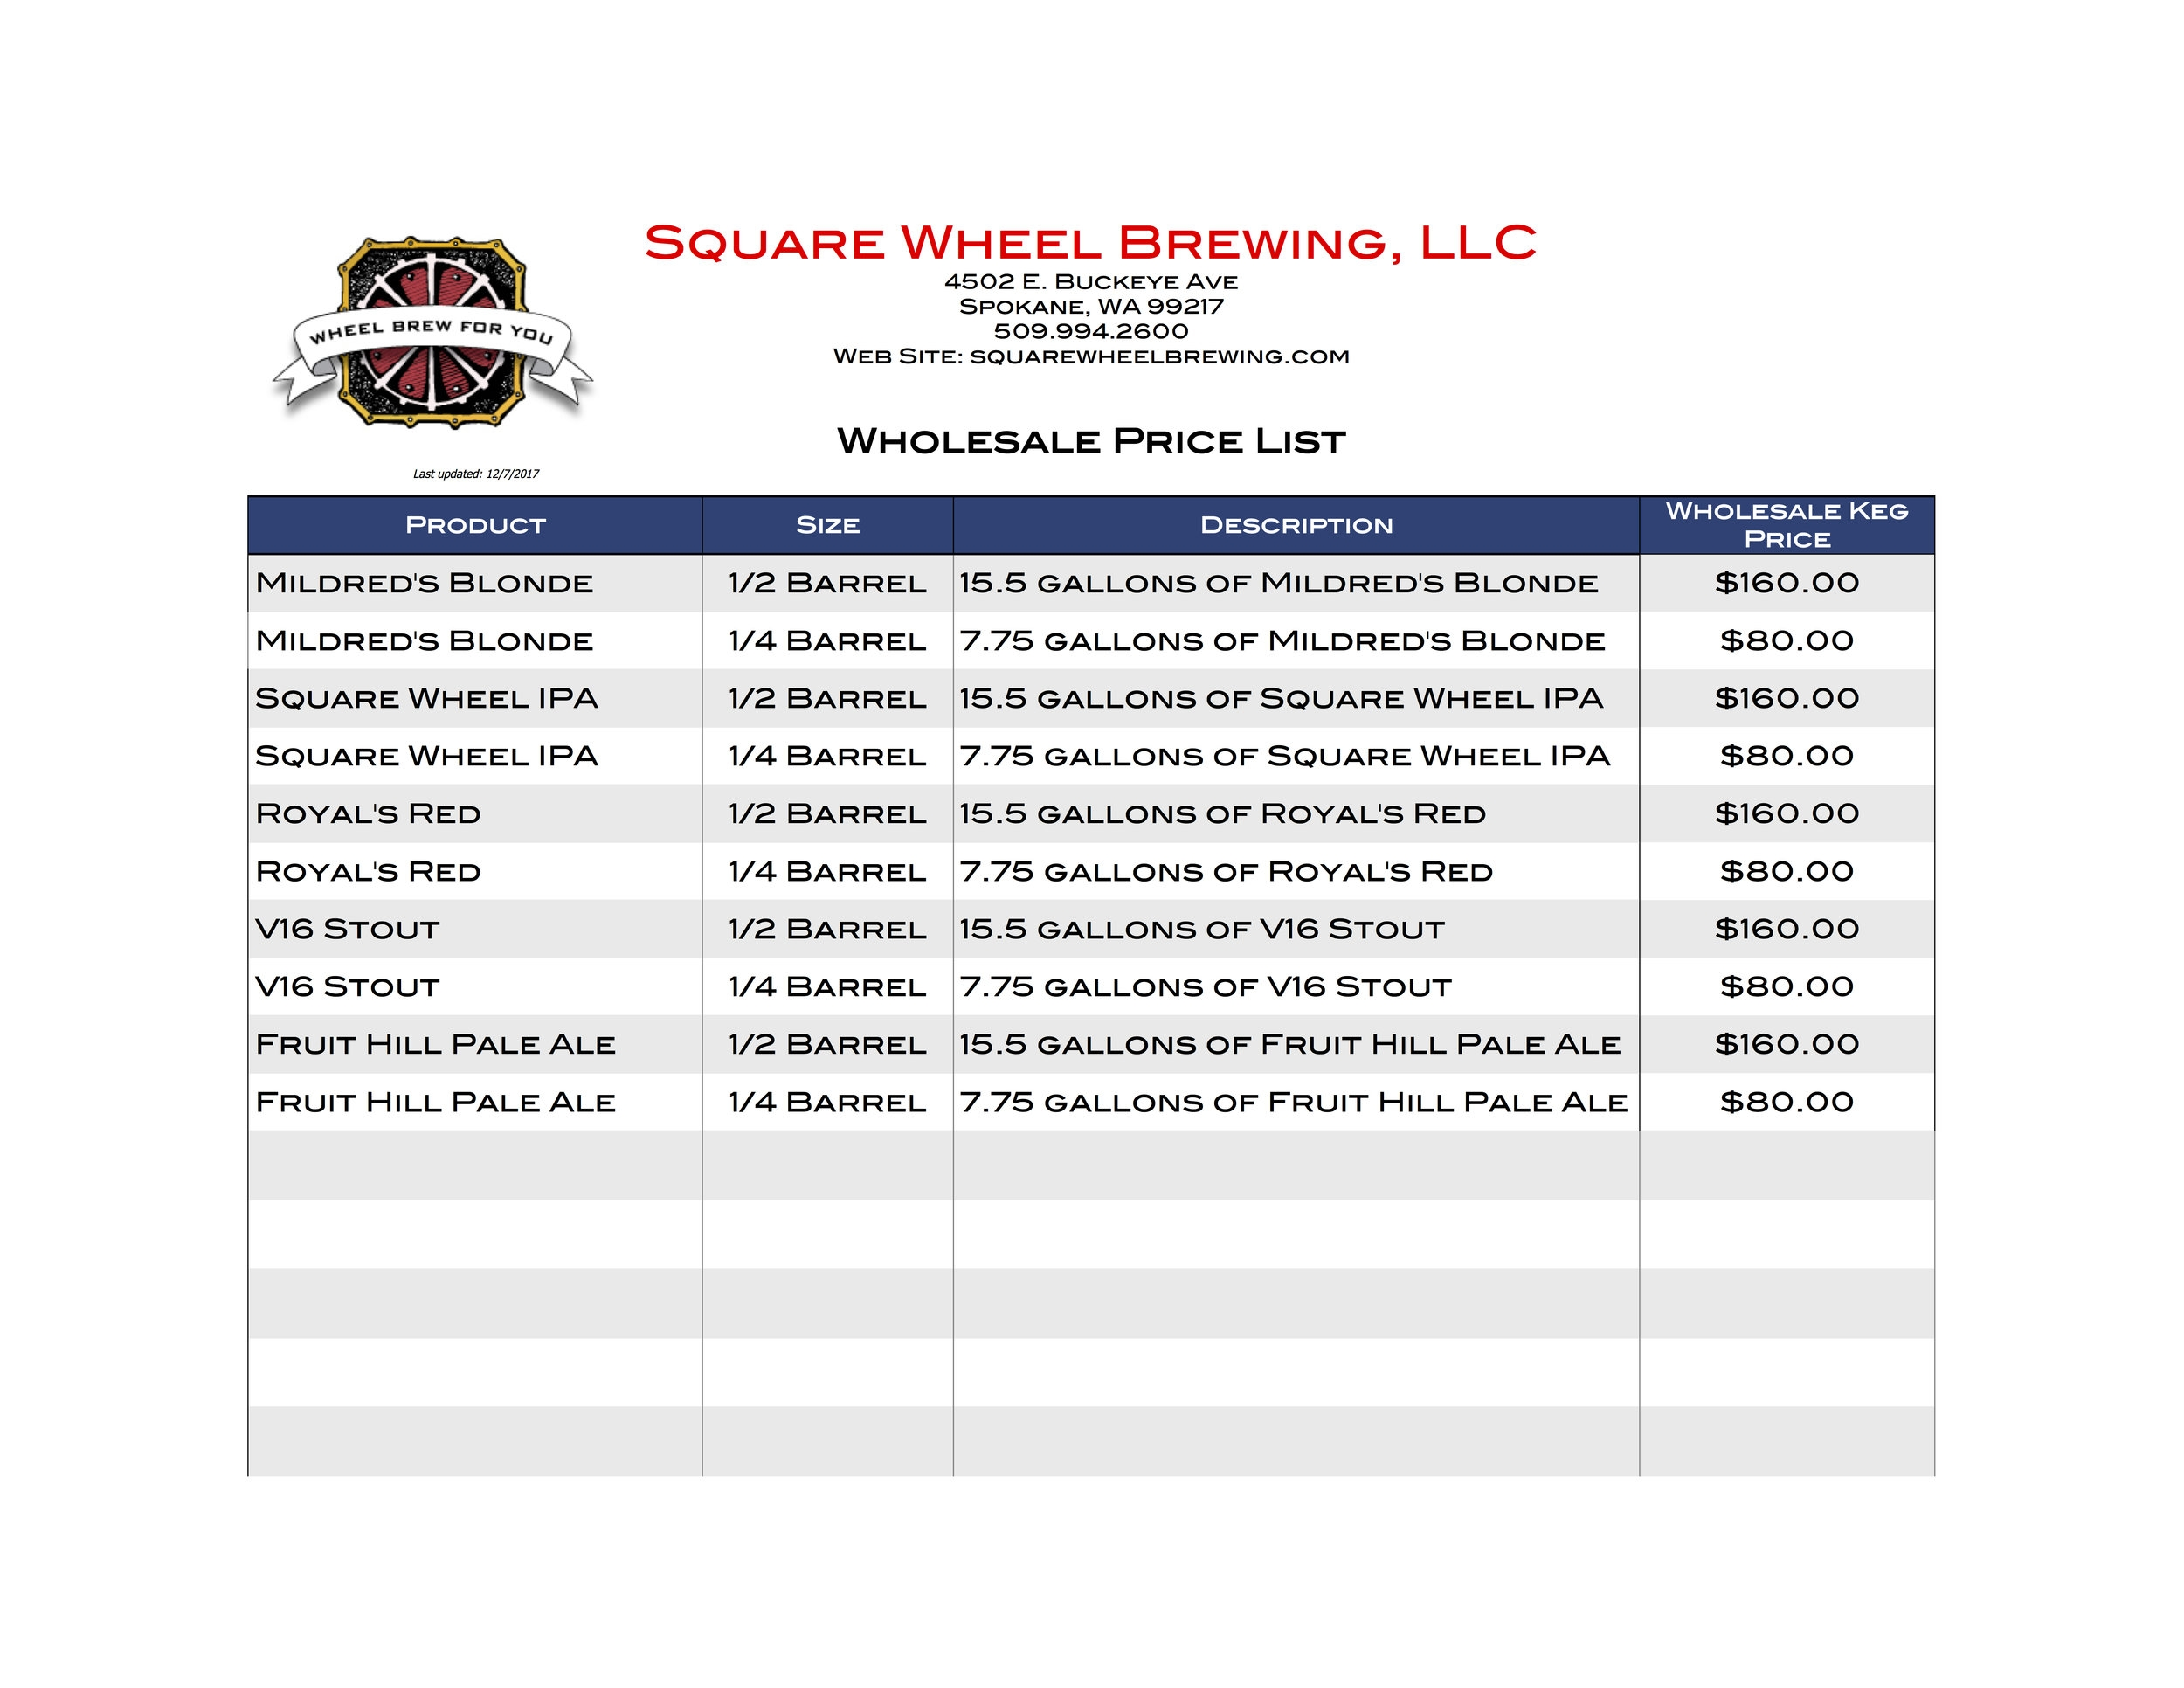 Square Wheel Wholesale Price List.jpg